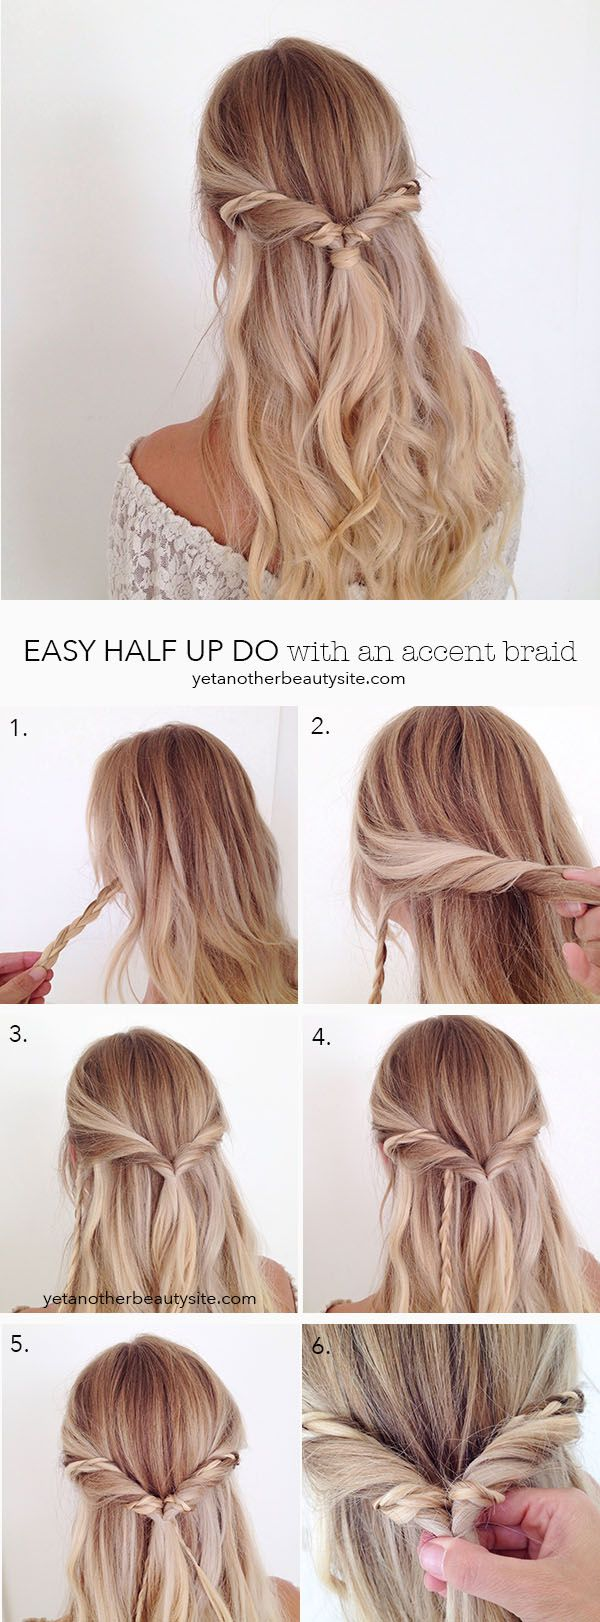 Simple Hairstyles Easy Hair Tutorial Half Up Do With An Accent Braid Such A